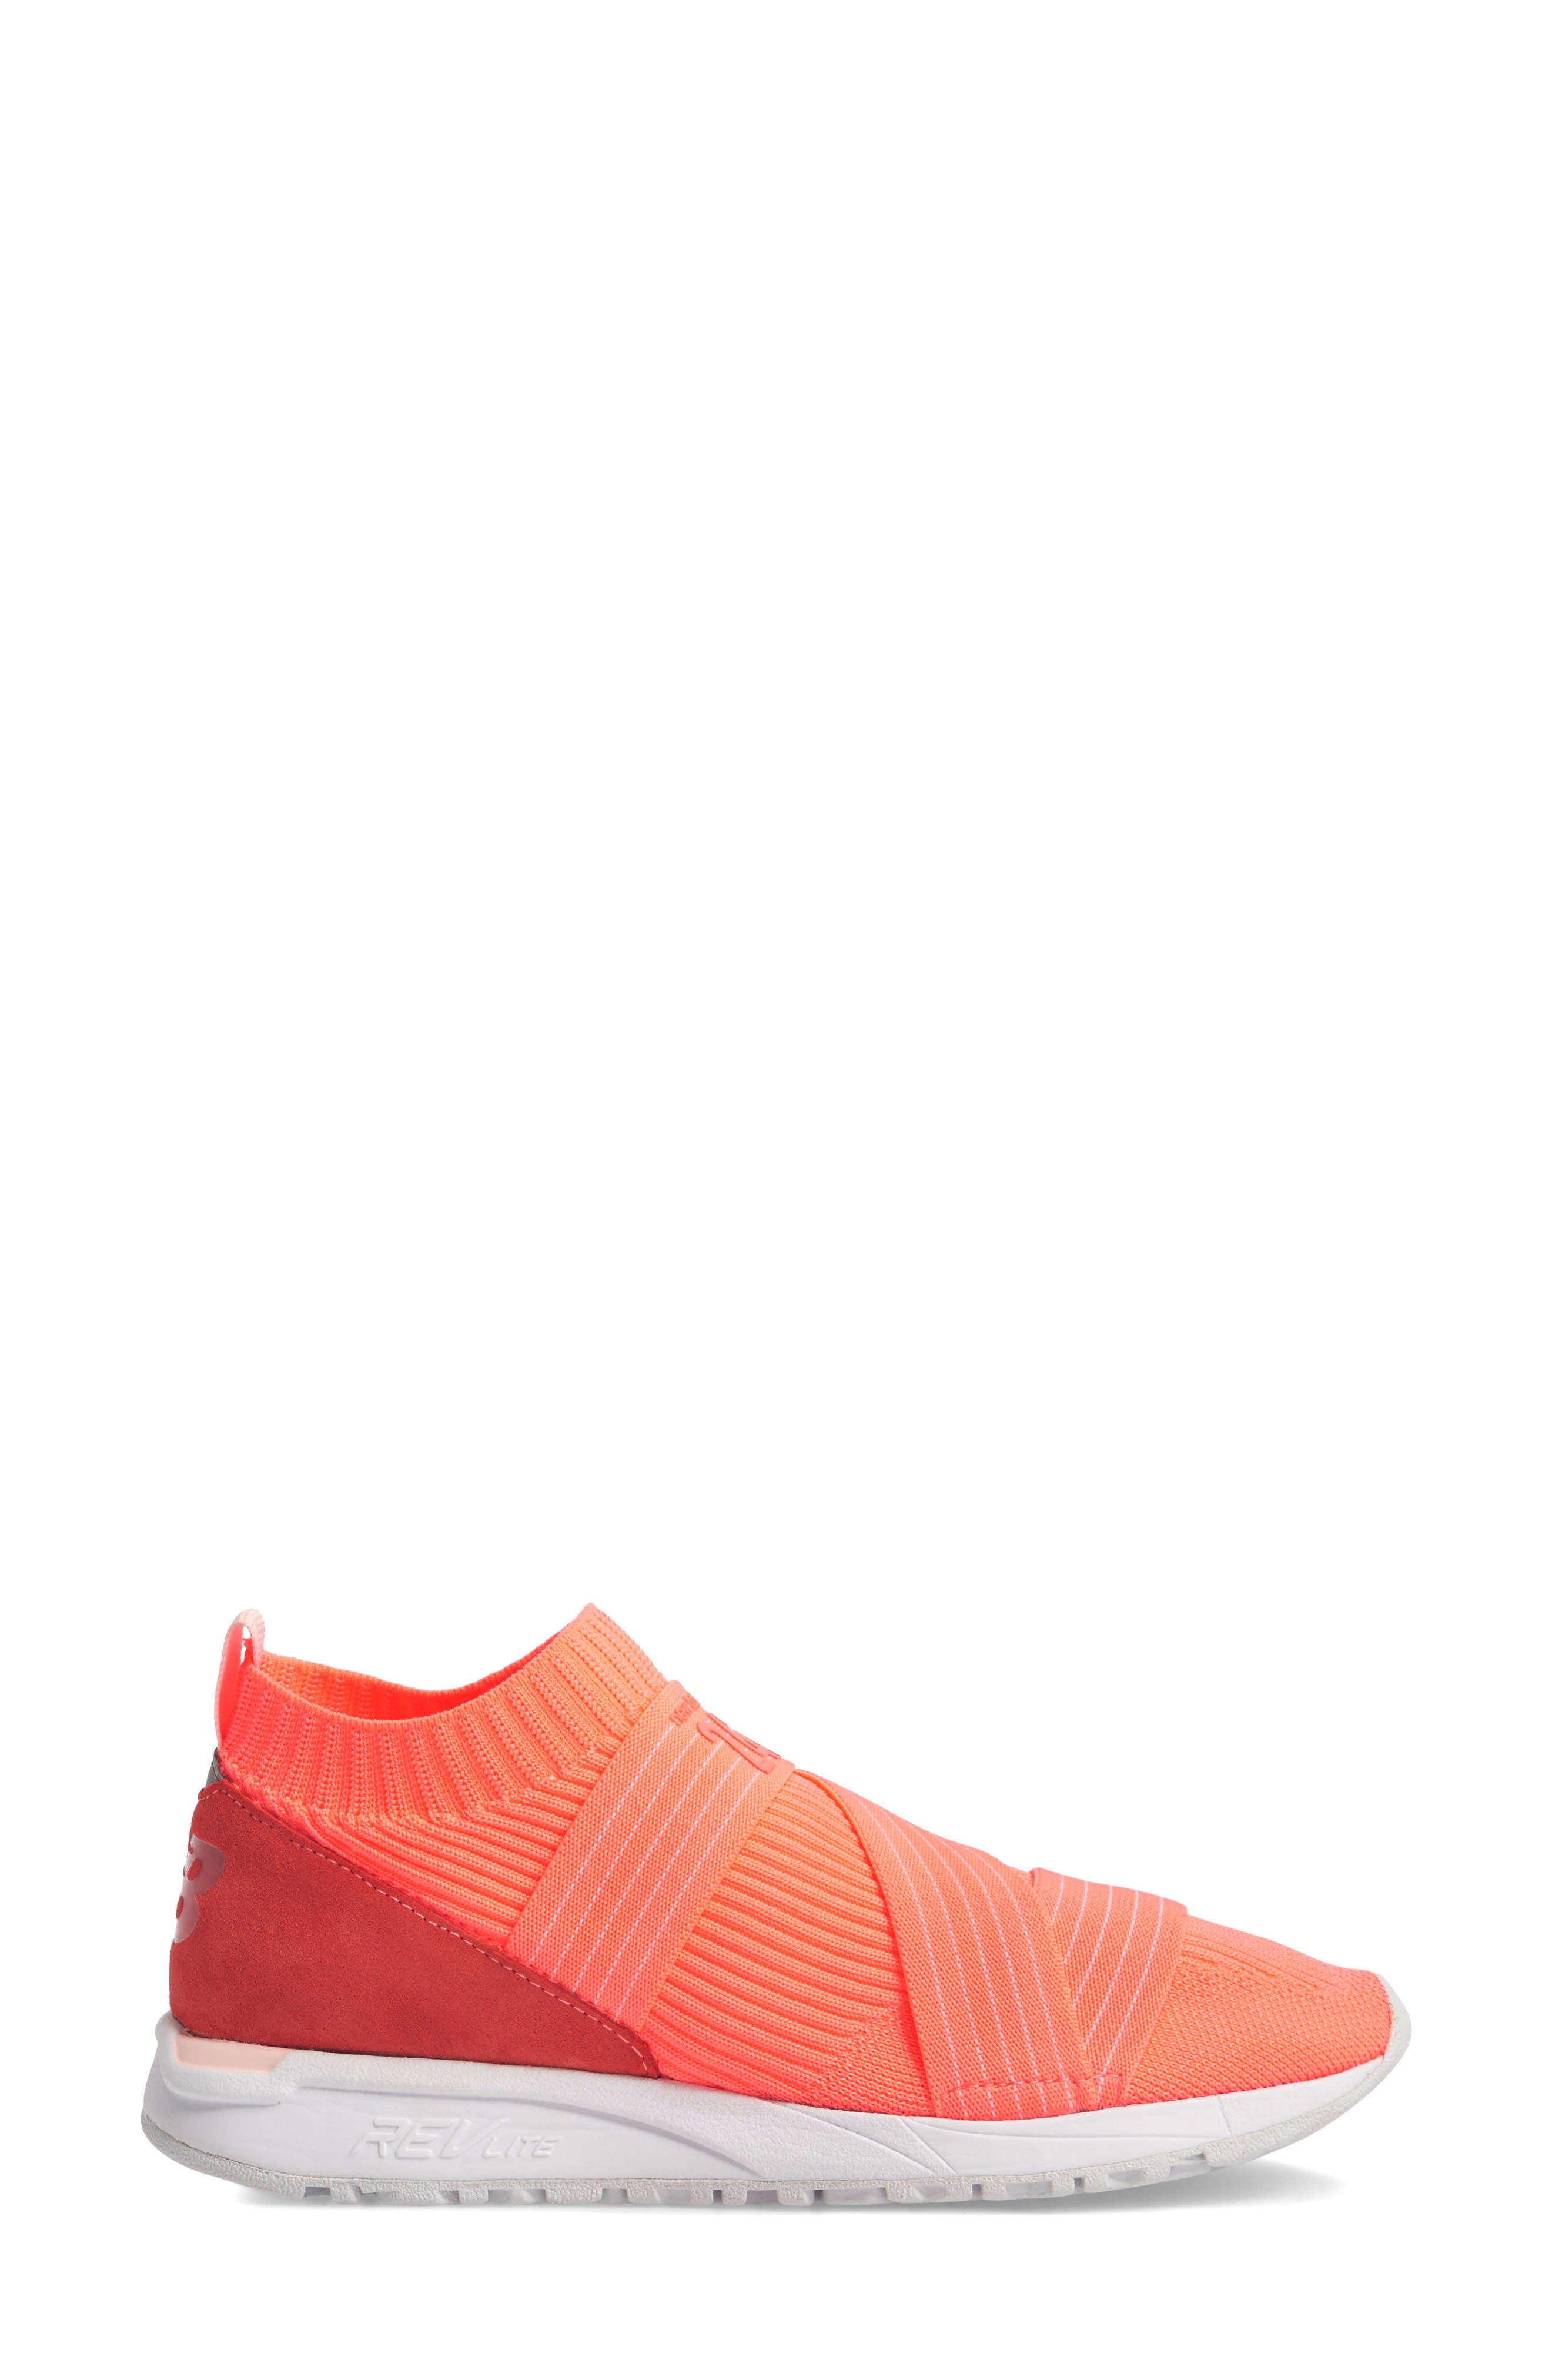 247 Knit Sneaker,                             Alternate thumbnail 3, color,                             Fiji